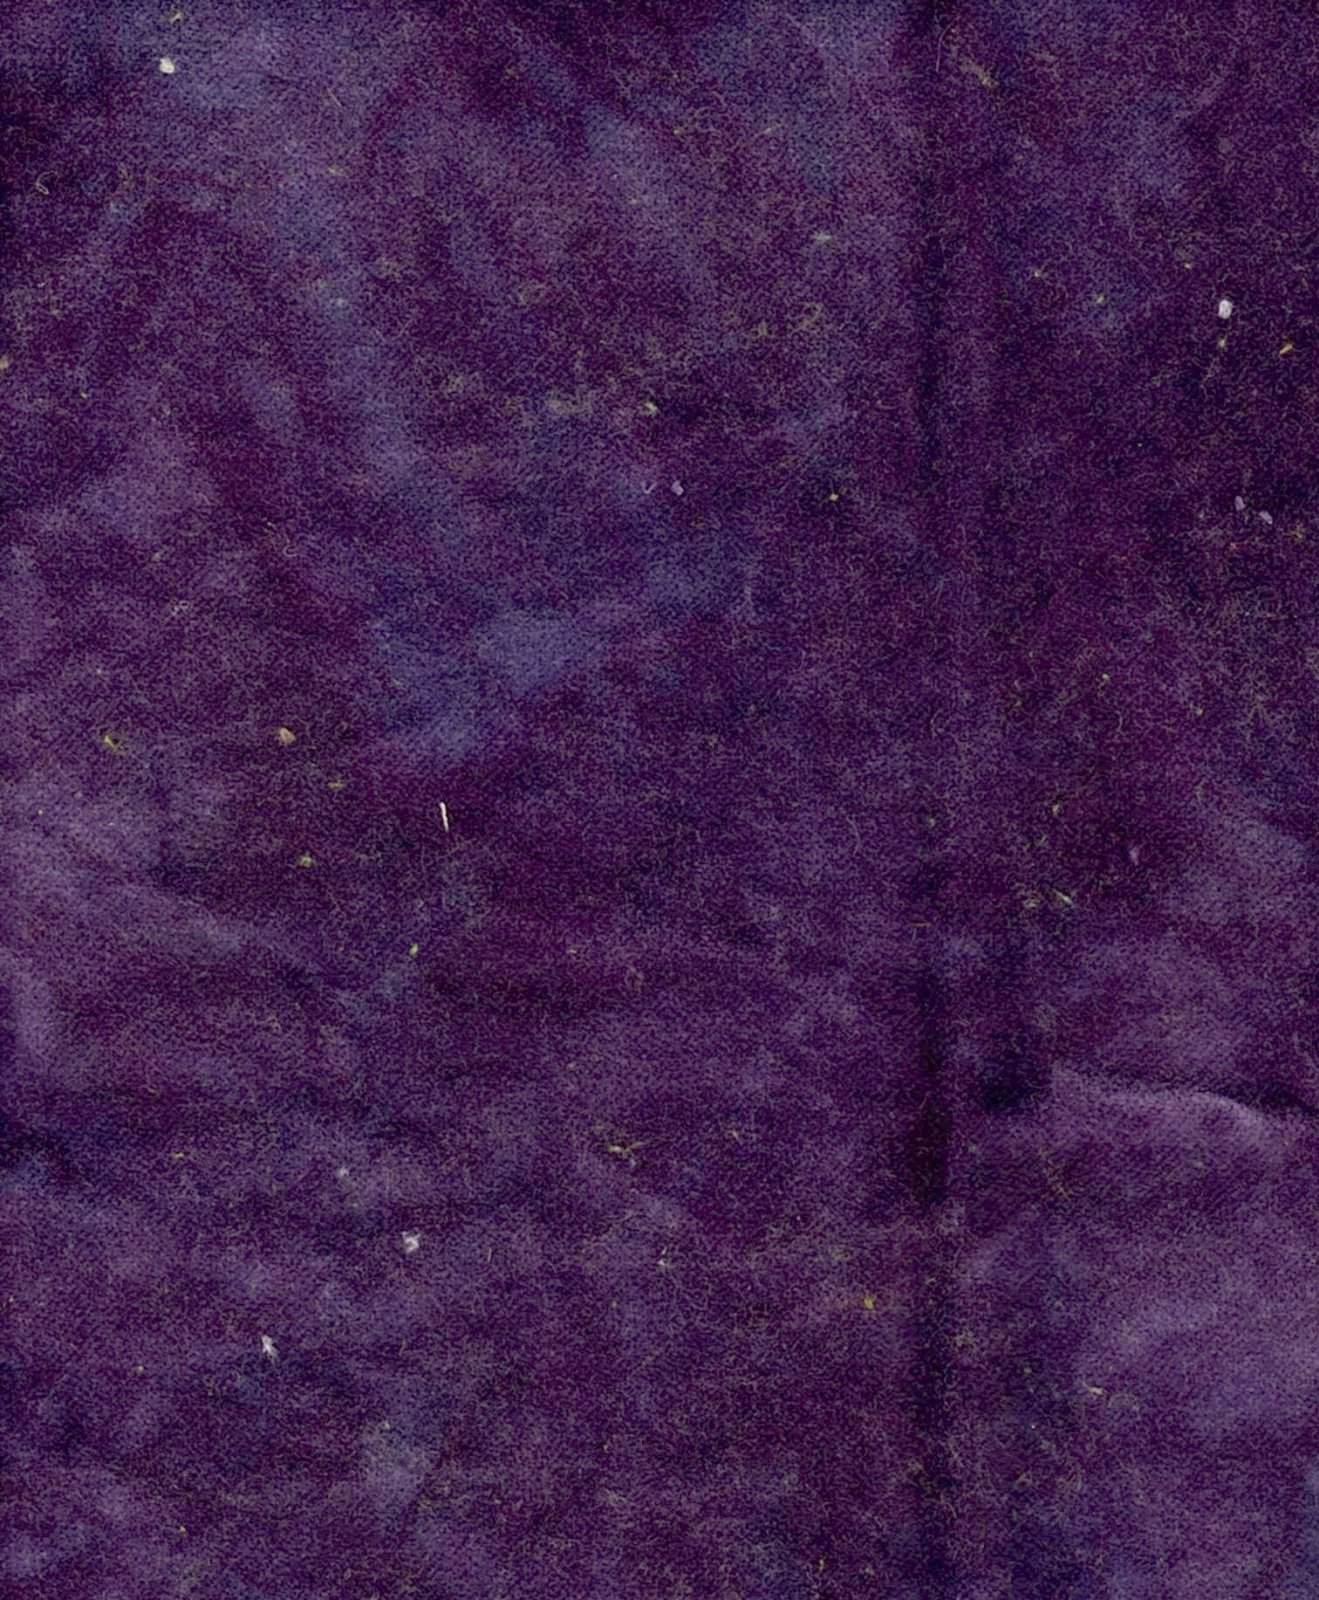 Plum Hand-Dyed Cotton Velveteen 9in x 10in